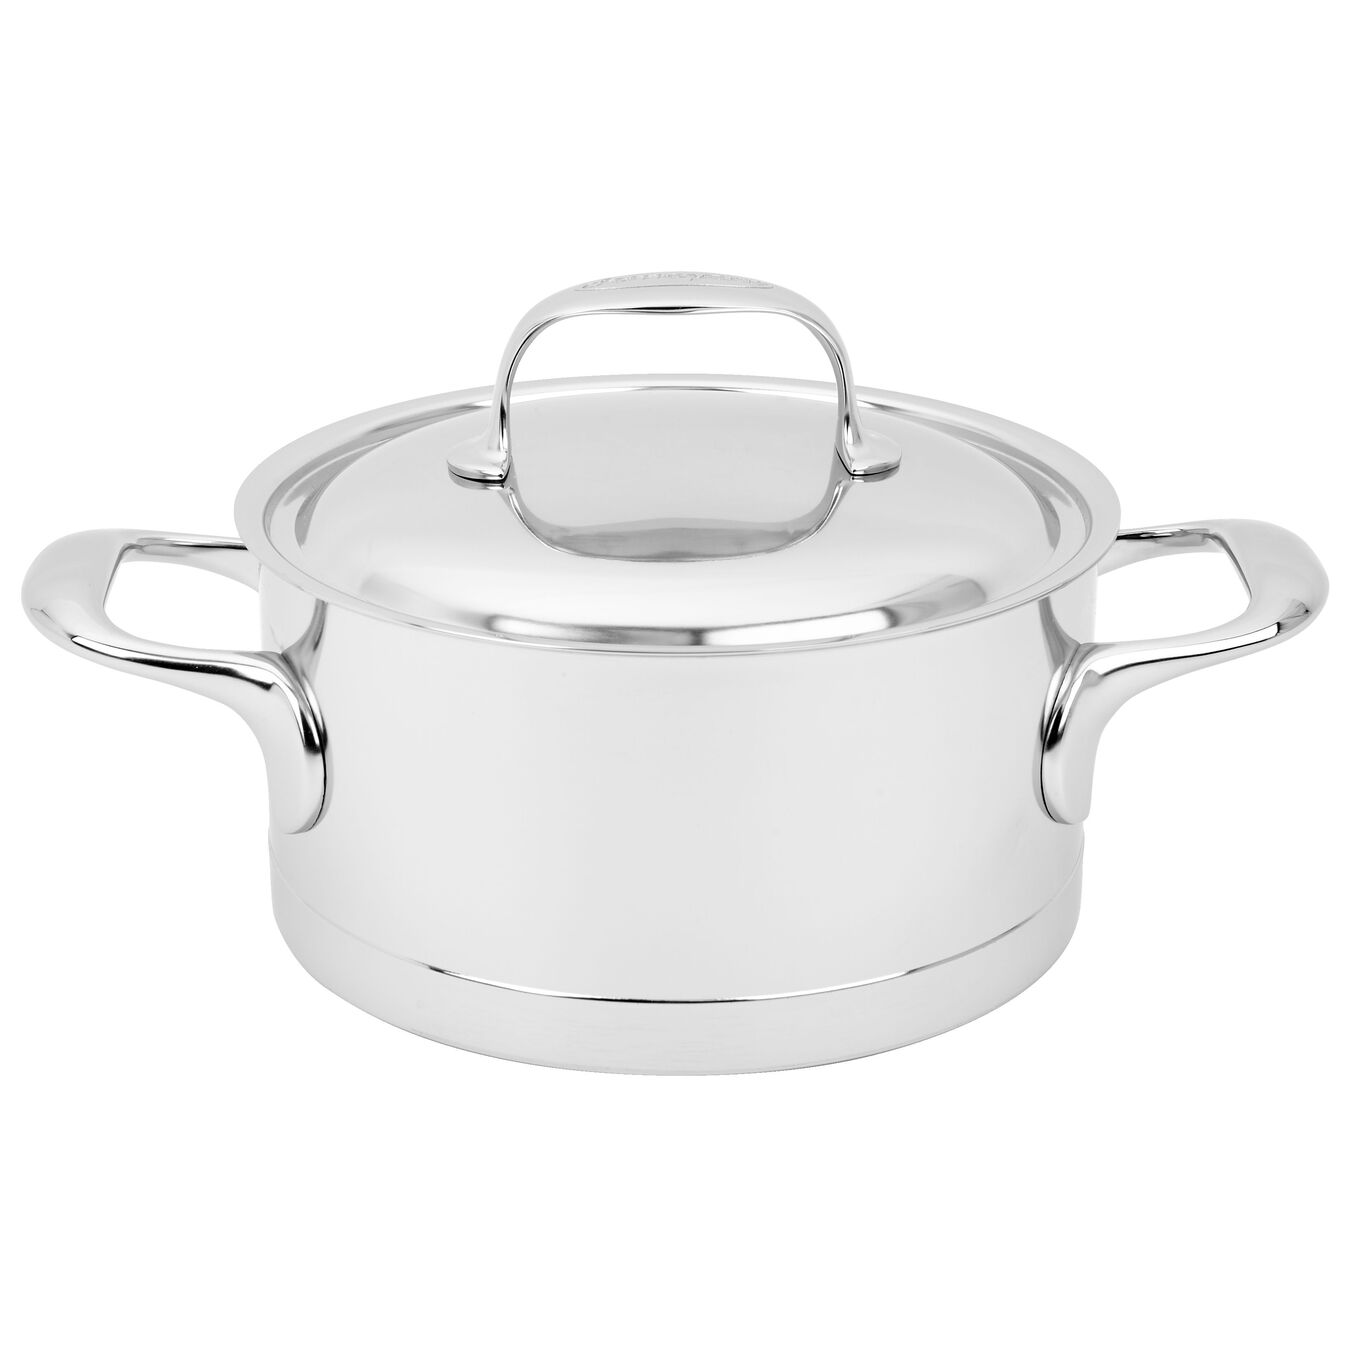 2,25 l 18/10 Stainless Steel Faitout with lid,,large 2